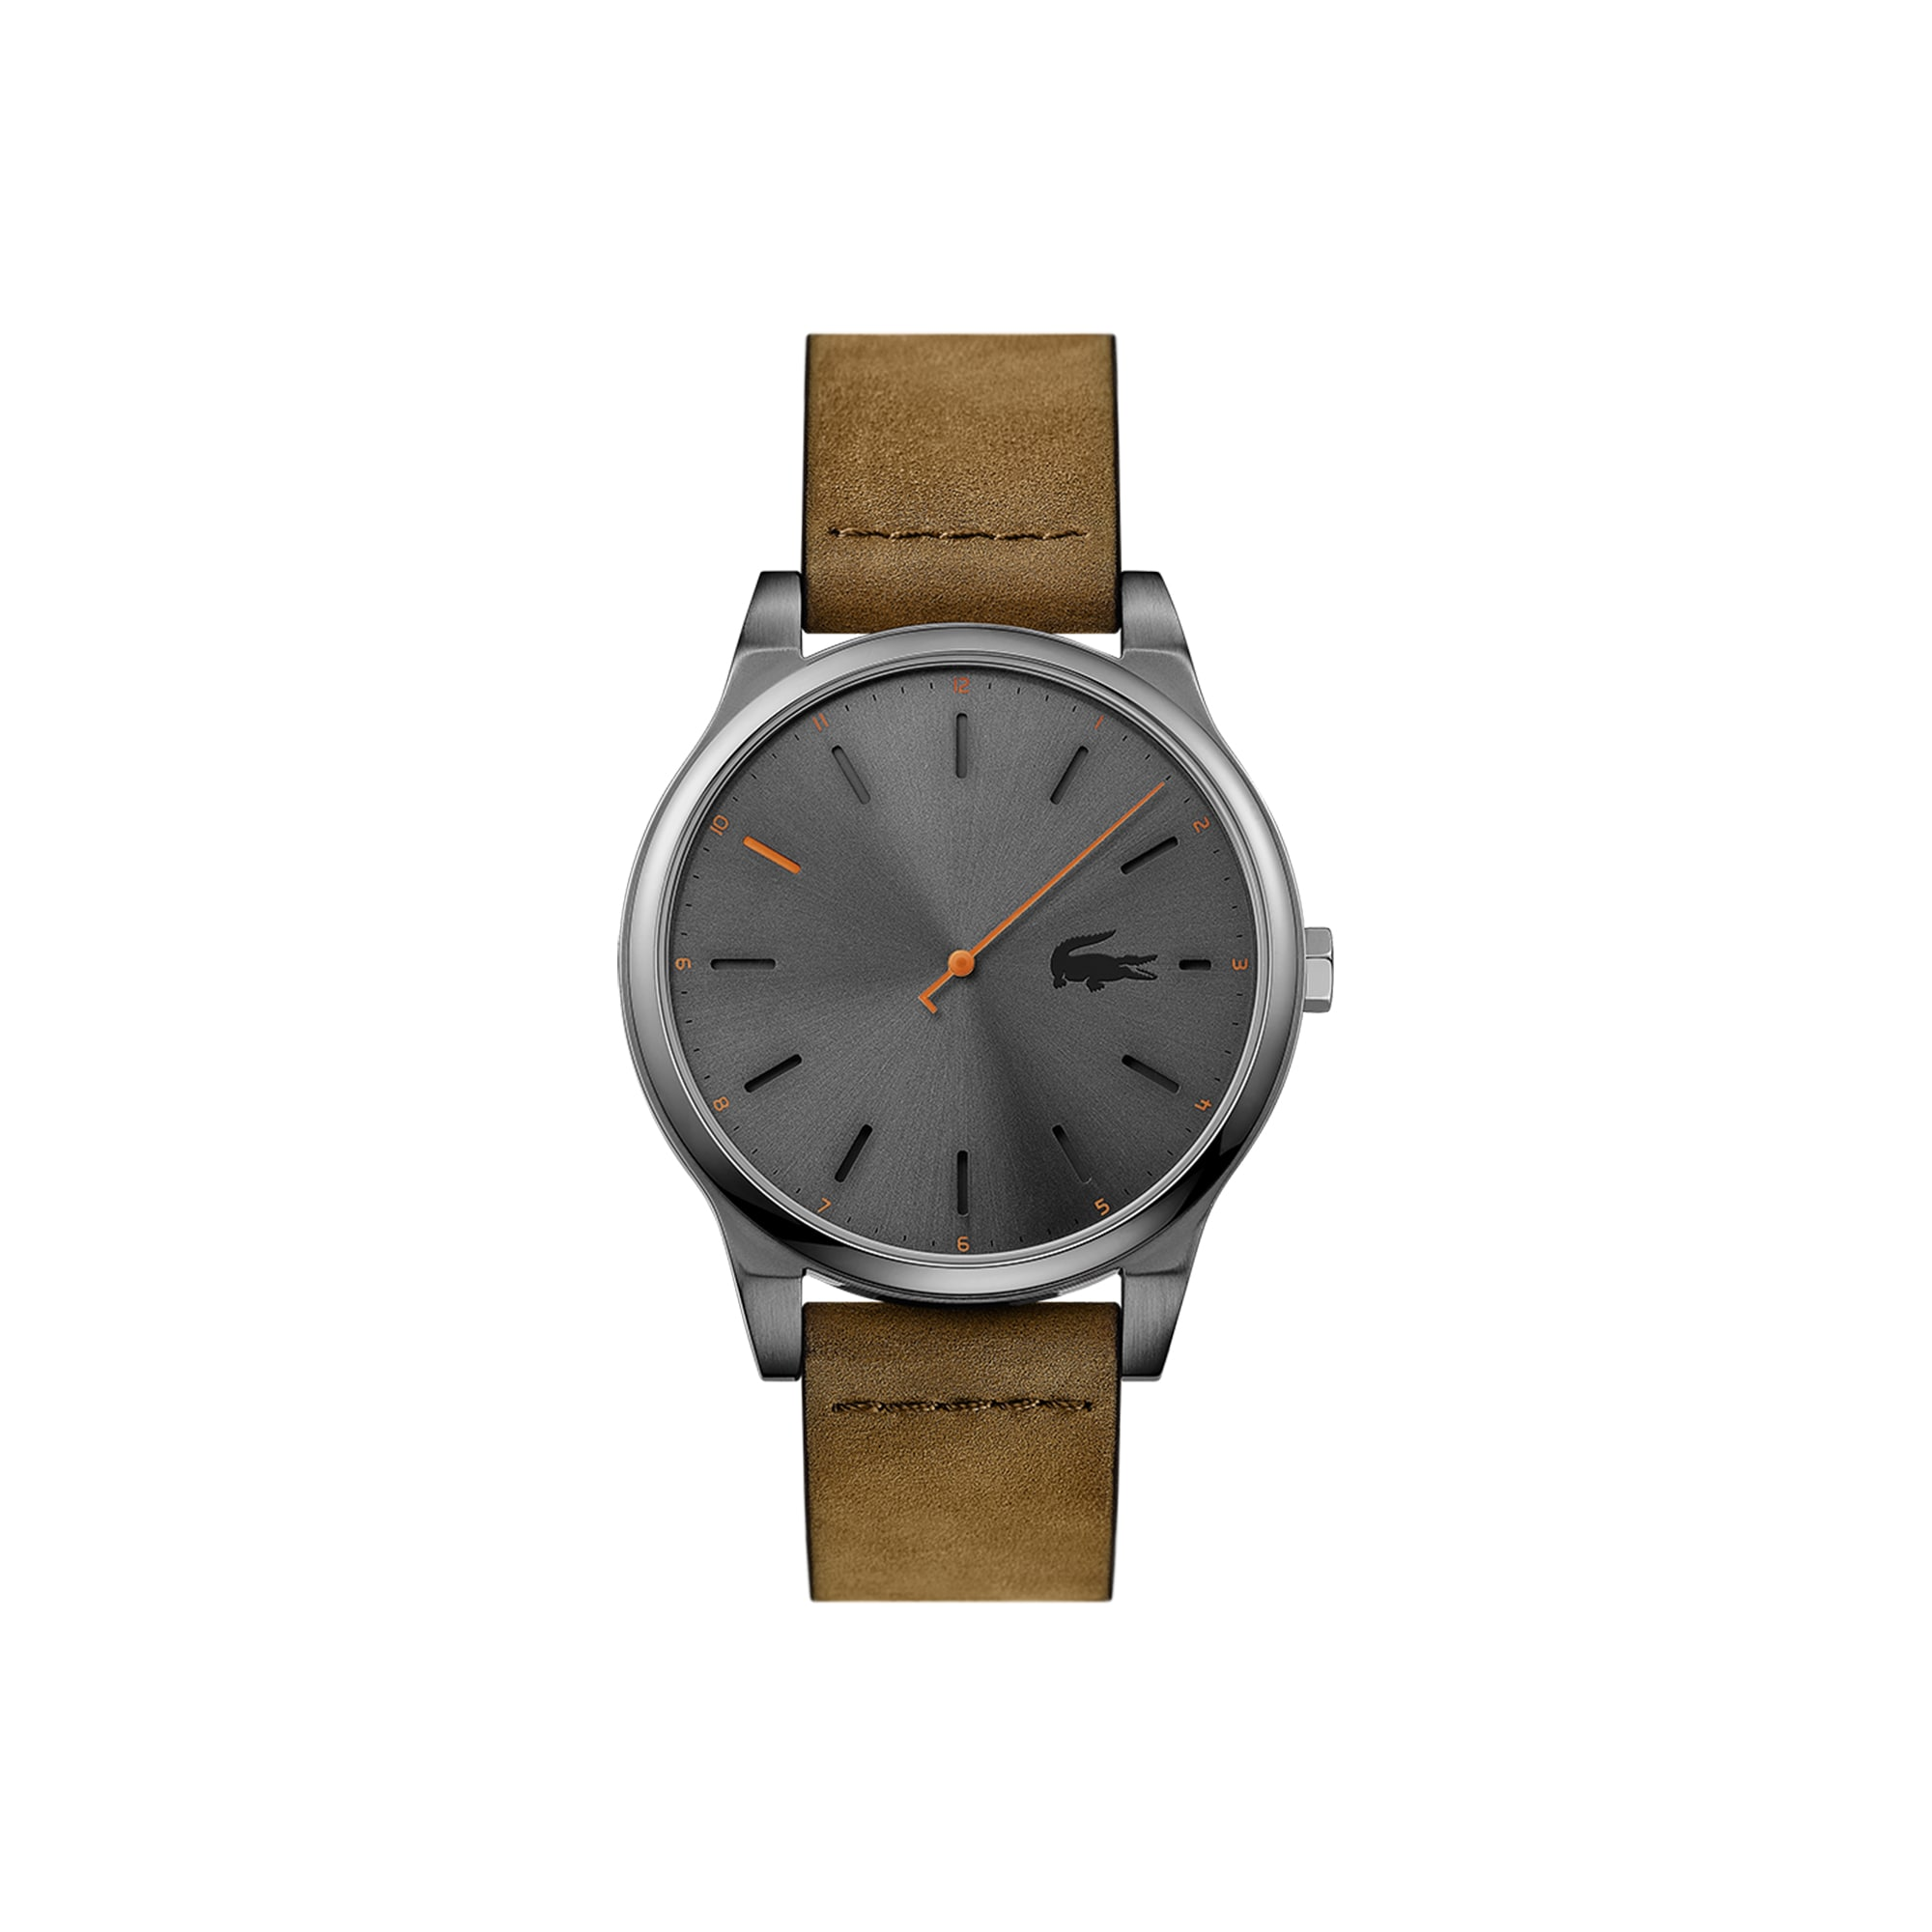 라코스테 가죽 시계 Lacoste Mens Kyoto Watch with Brown Leather Strap,Brown